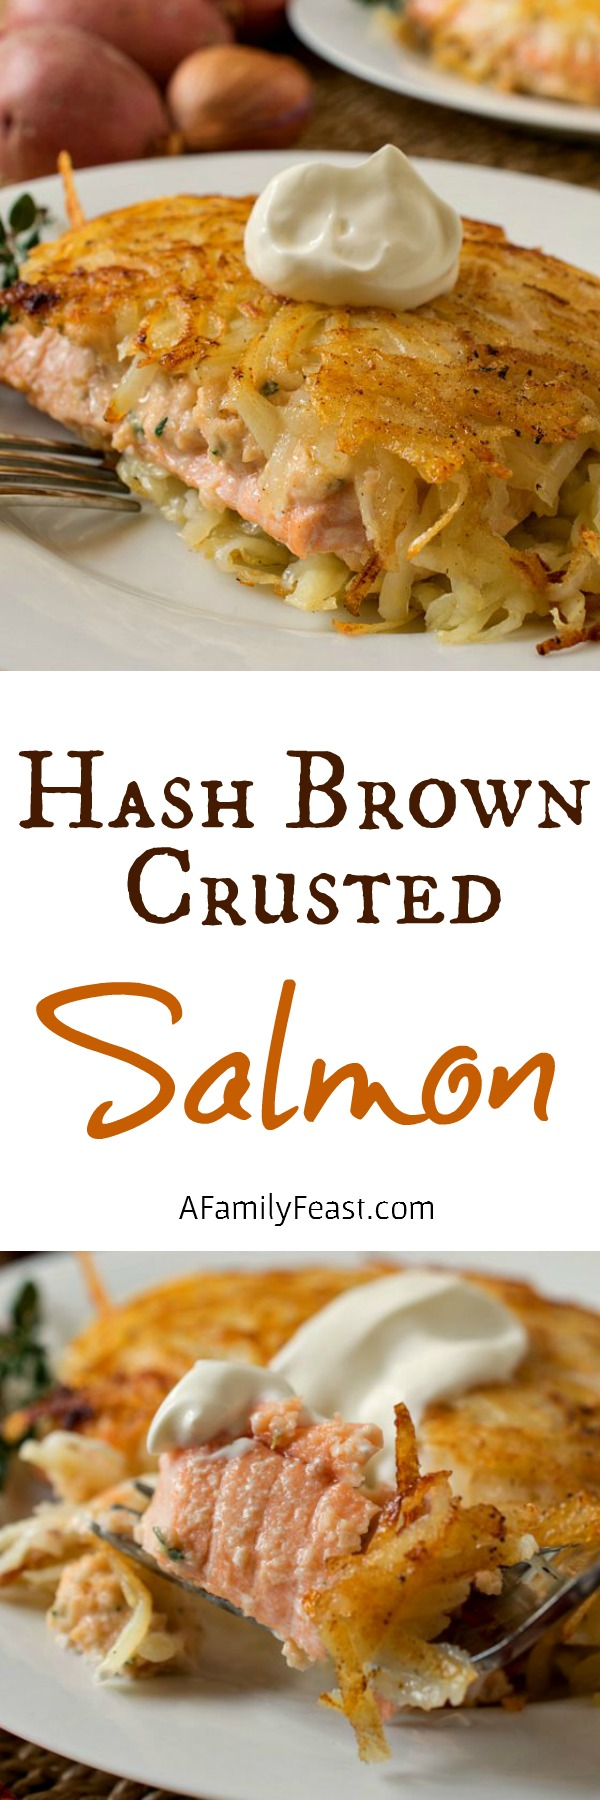 Hash Brown Crusted Salmon - A tender salmon filet encrusted in a hash brown coating! So delicious!